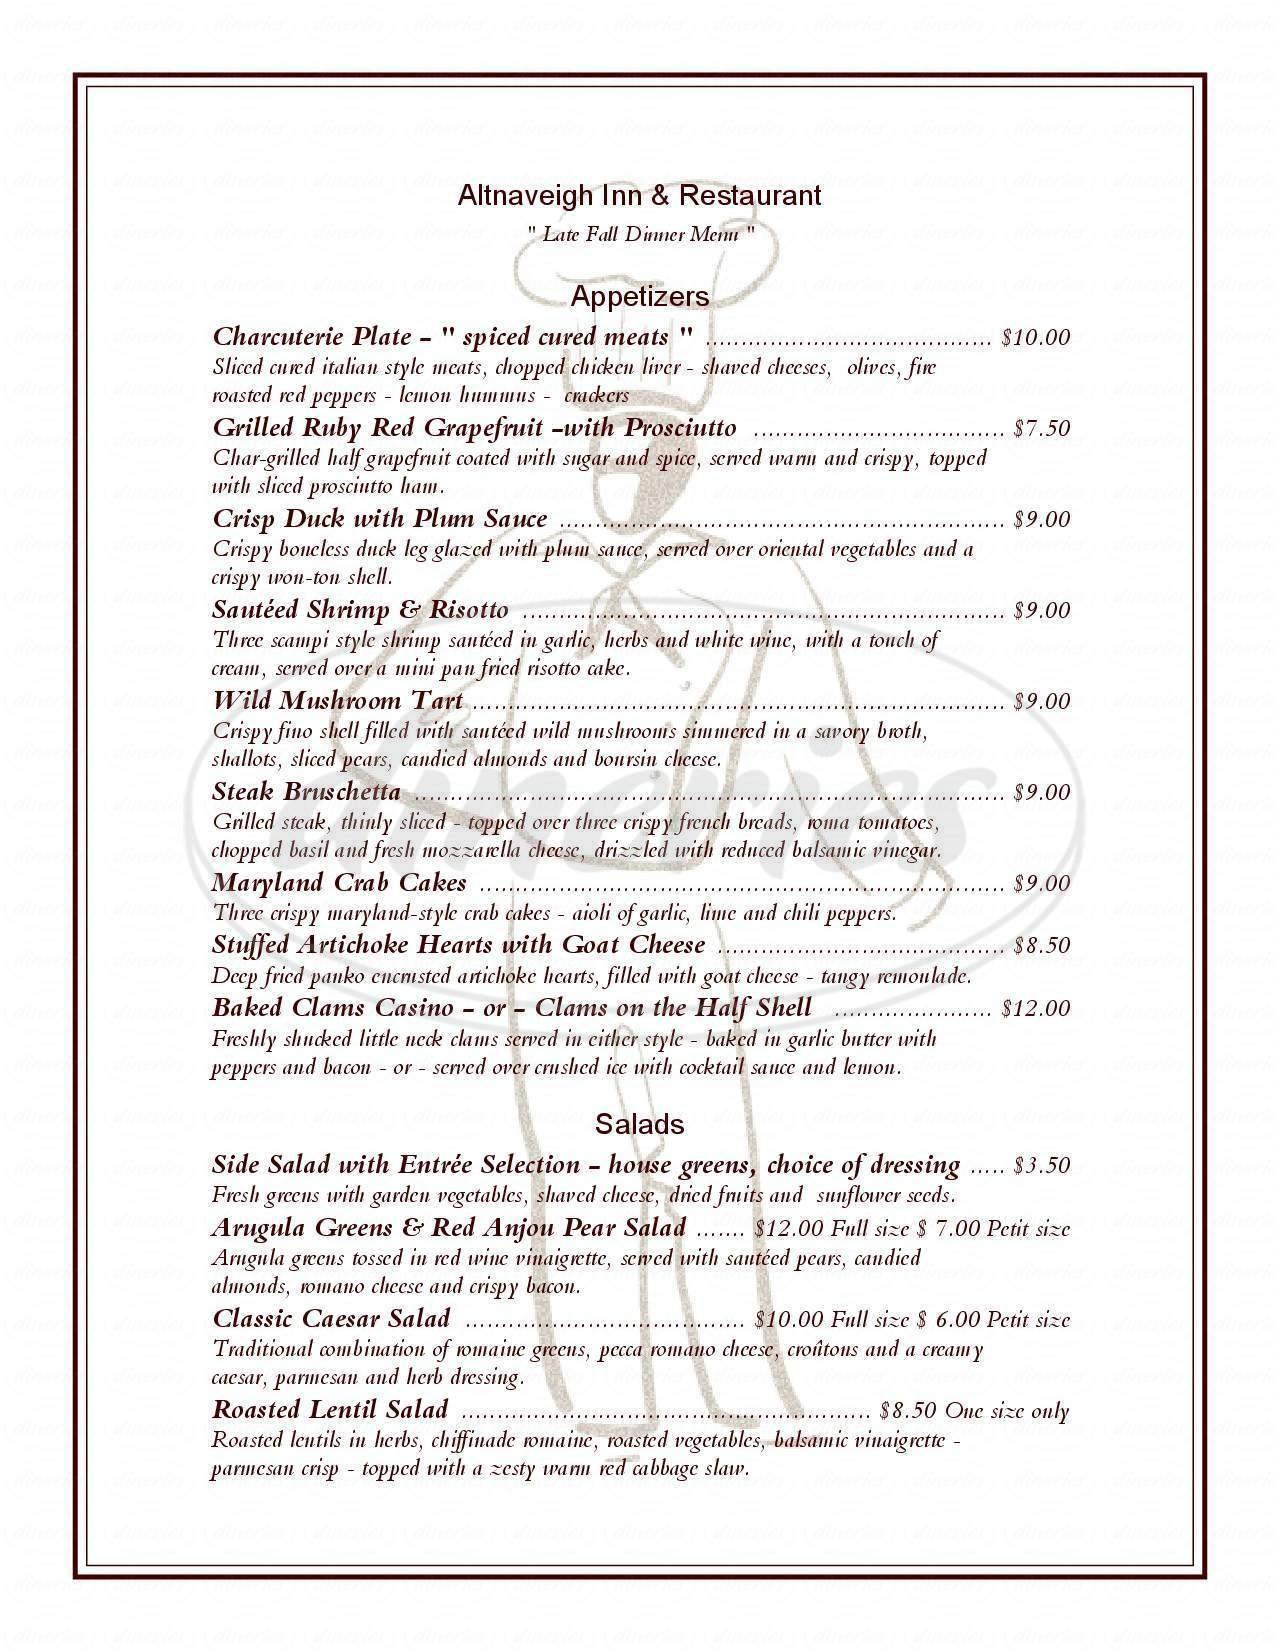 menu for Altnaveigh Inn